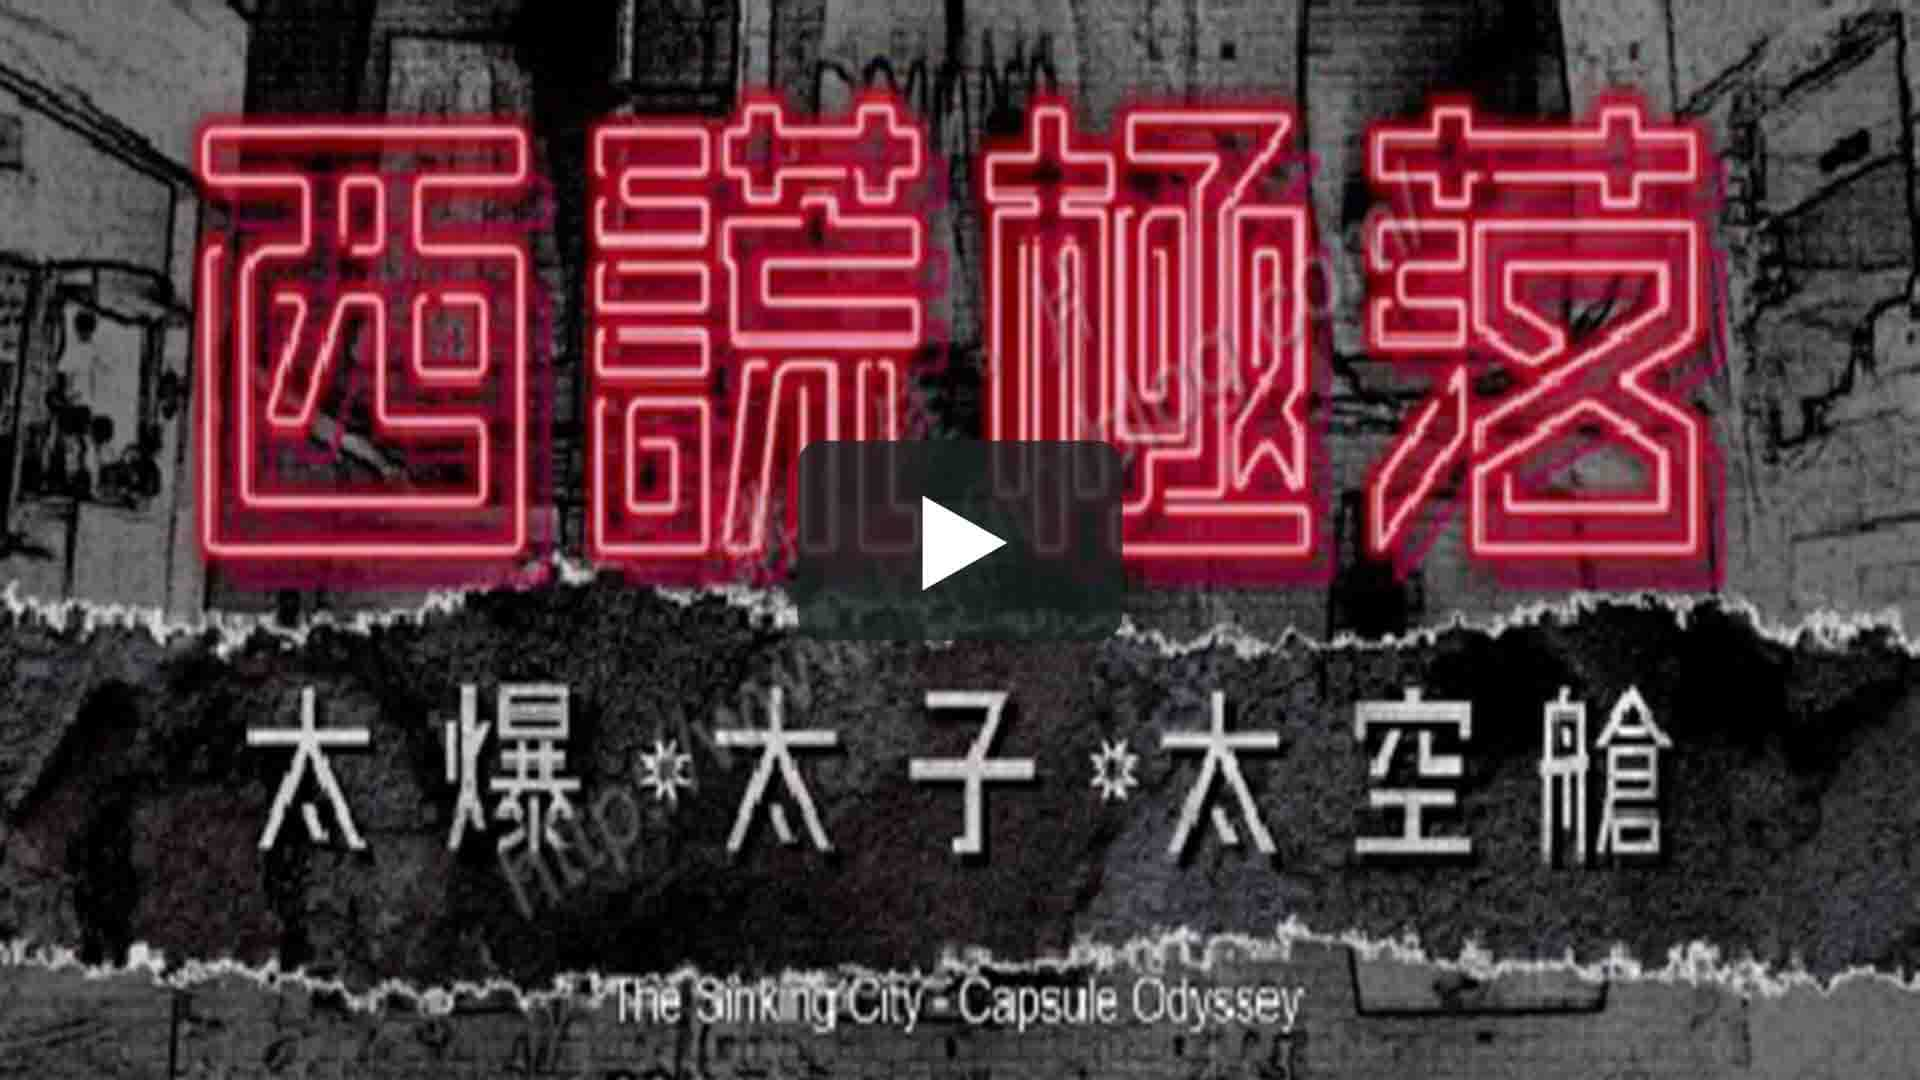 西謊極落之太爆太子太空艙[国语版] - The Sinking City From the Space Capsule